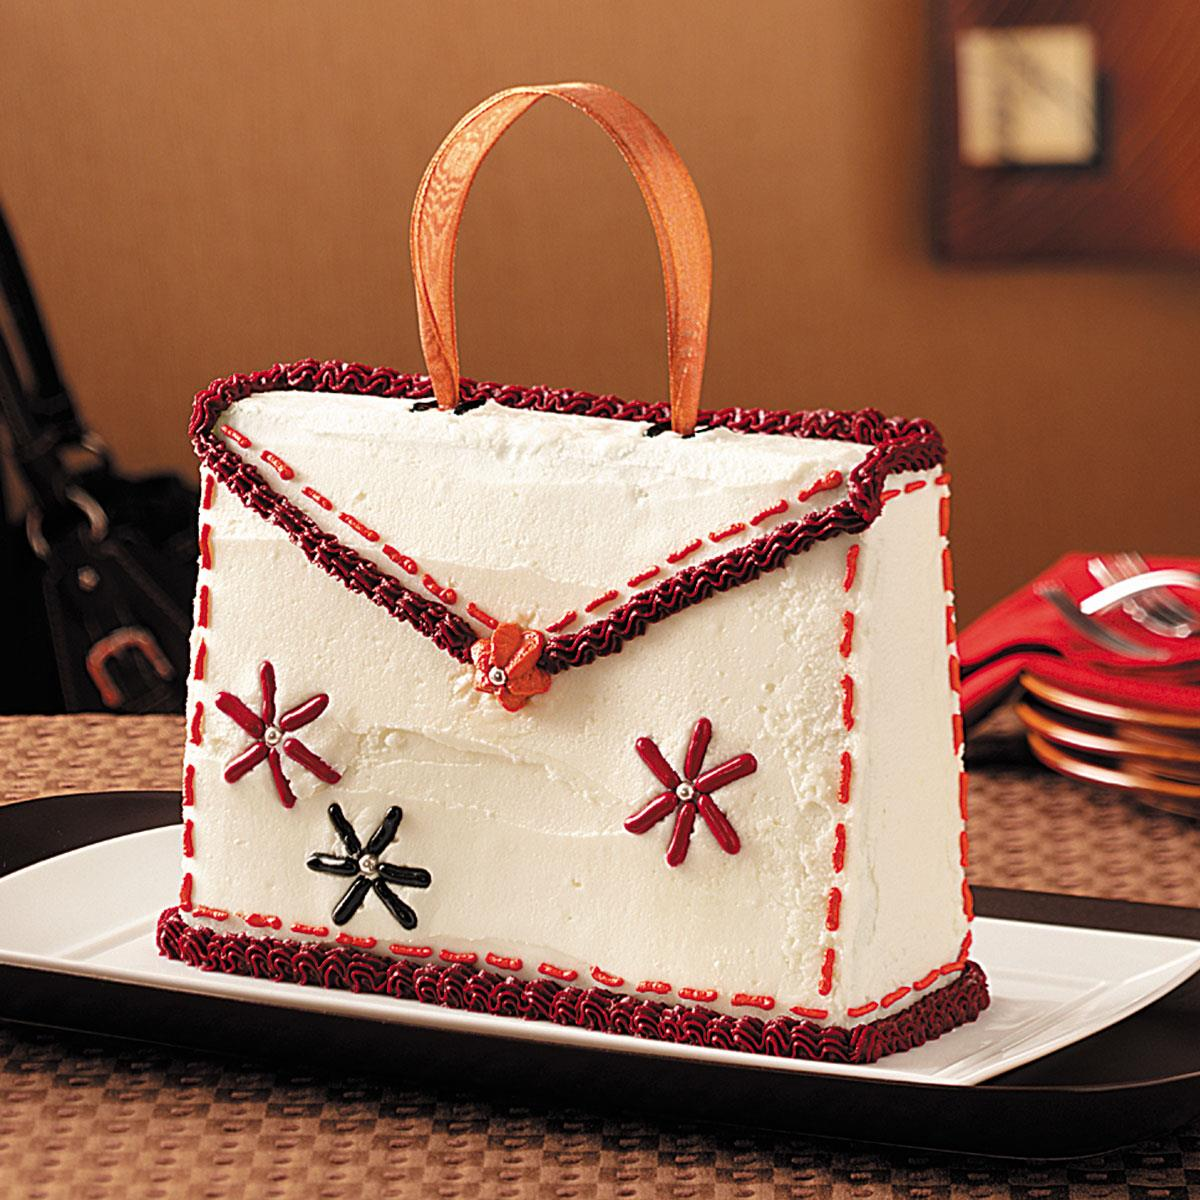 Purse Cake Recipe Taste Of Home